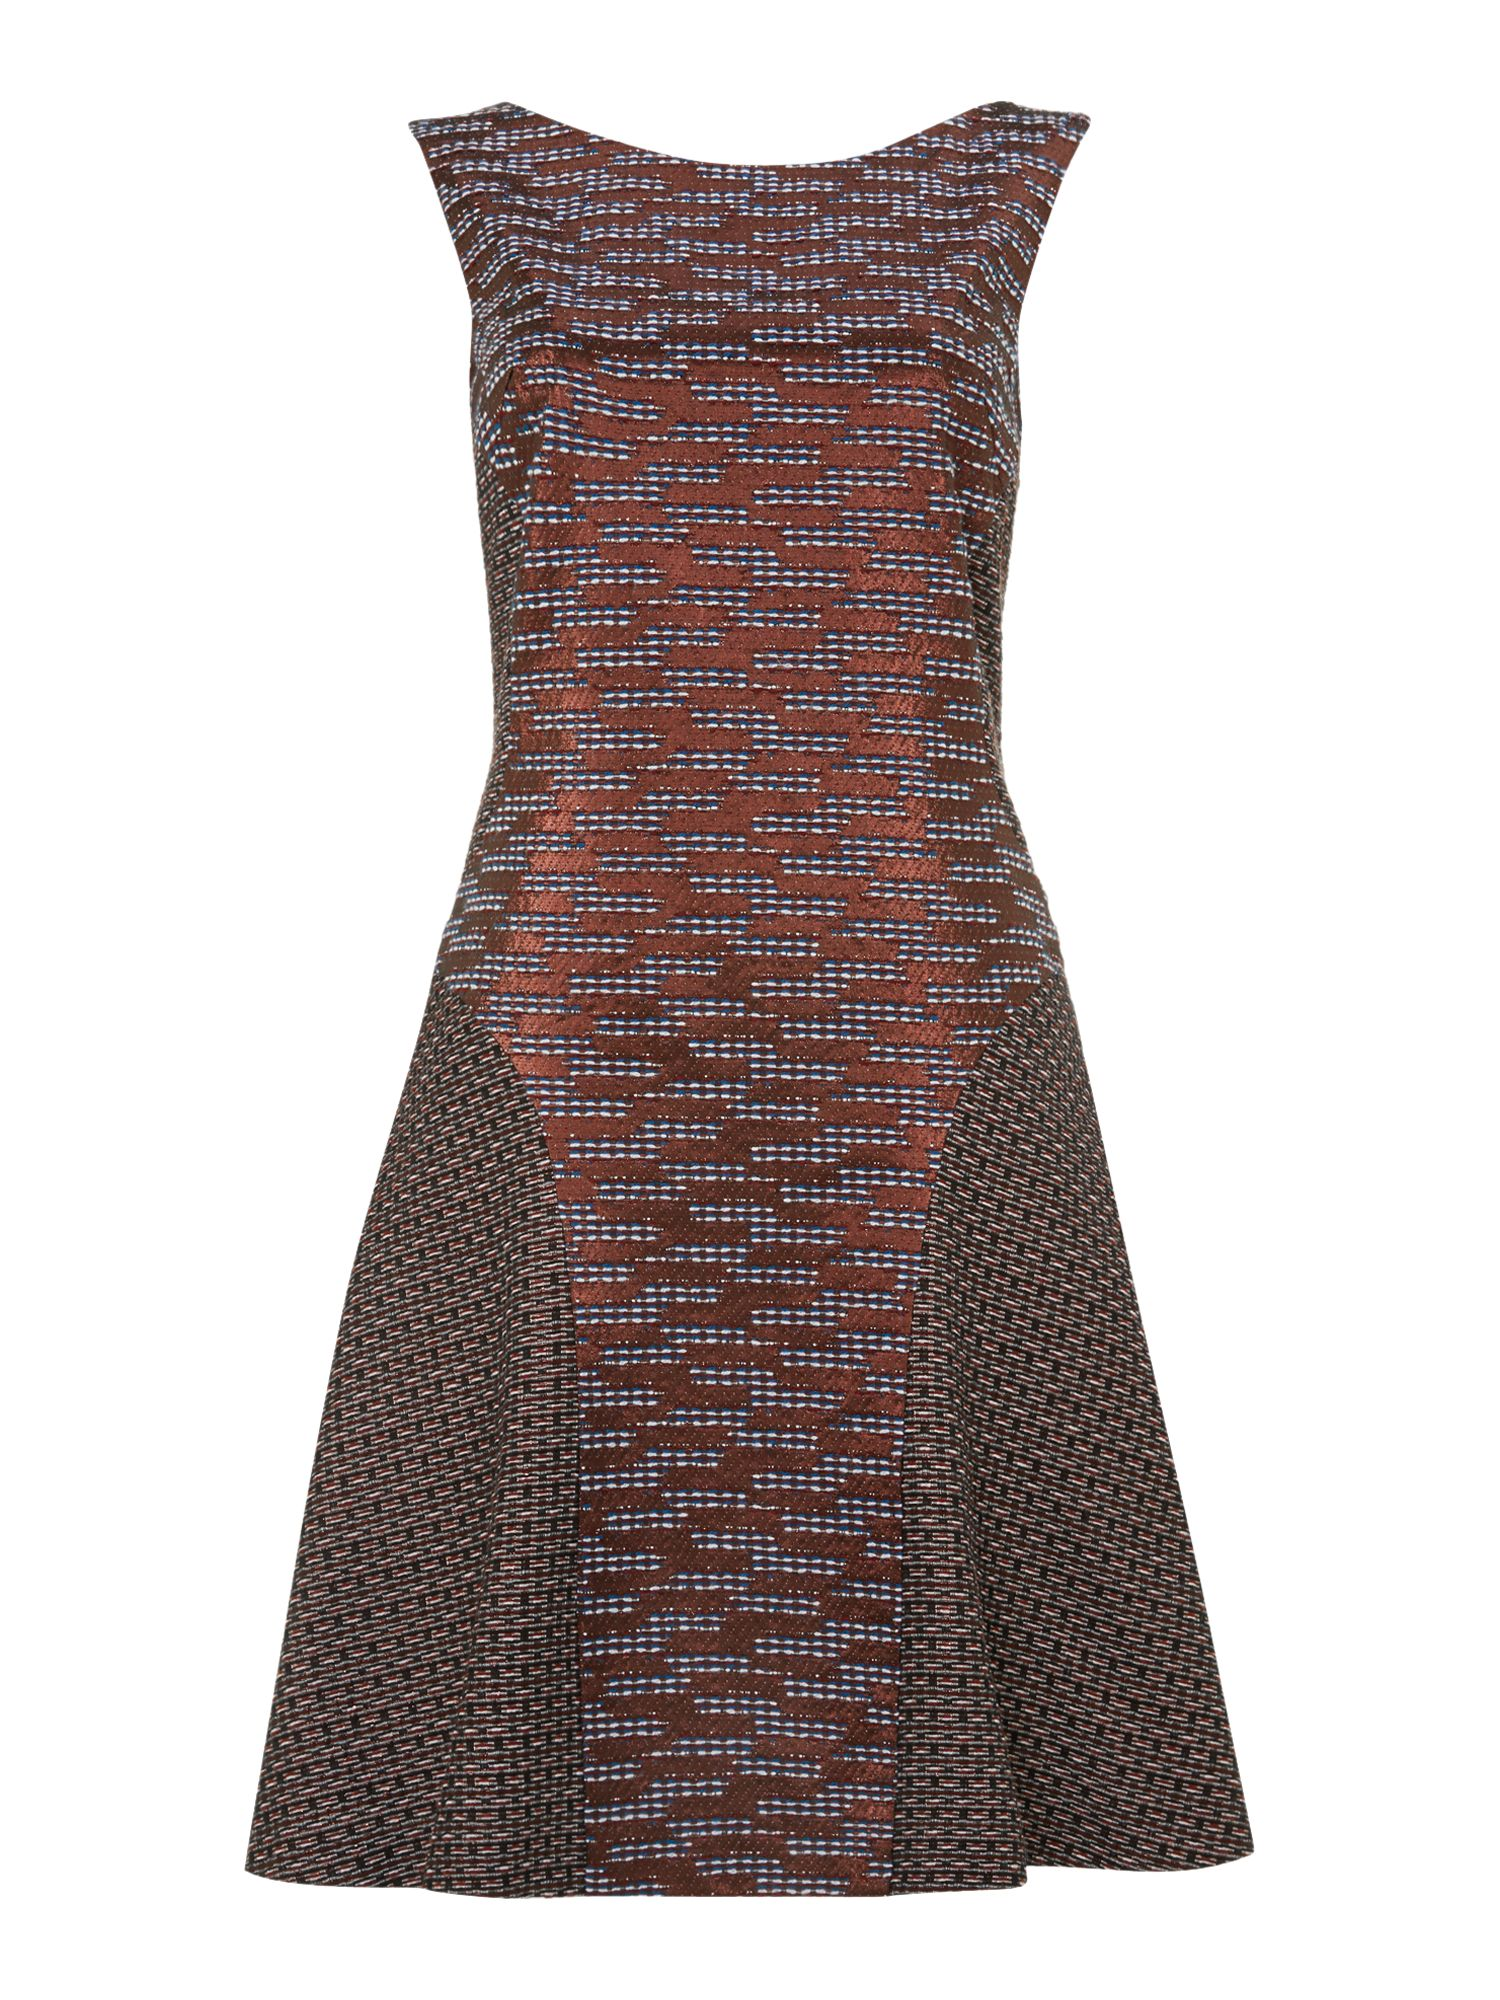 Sleeveless metallic print dress